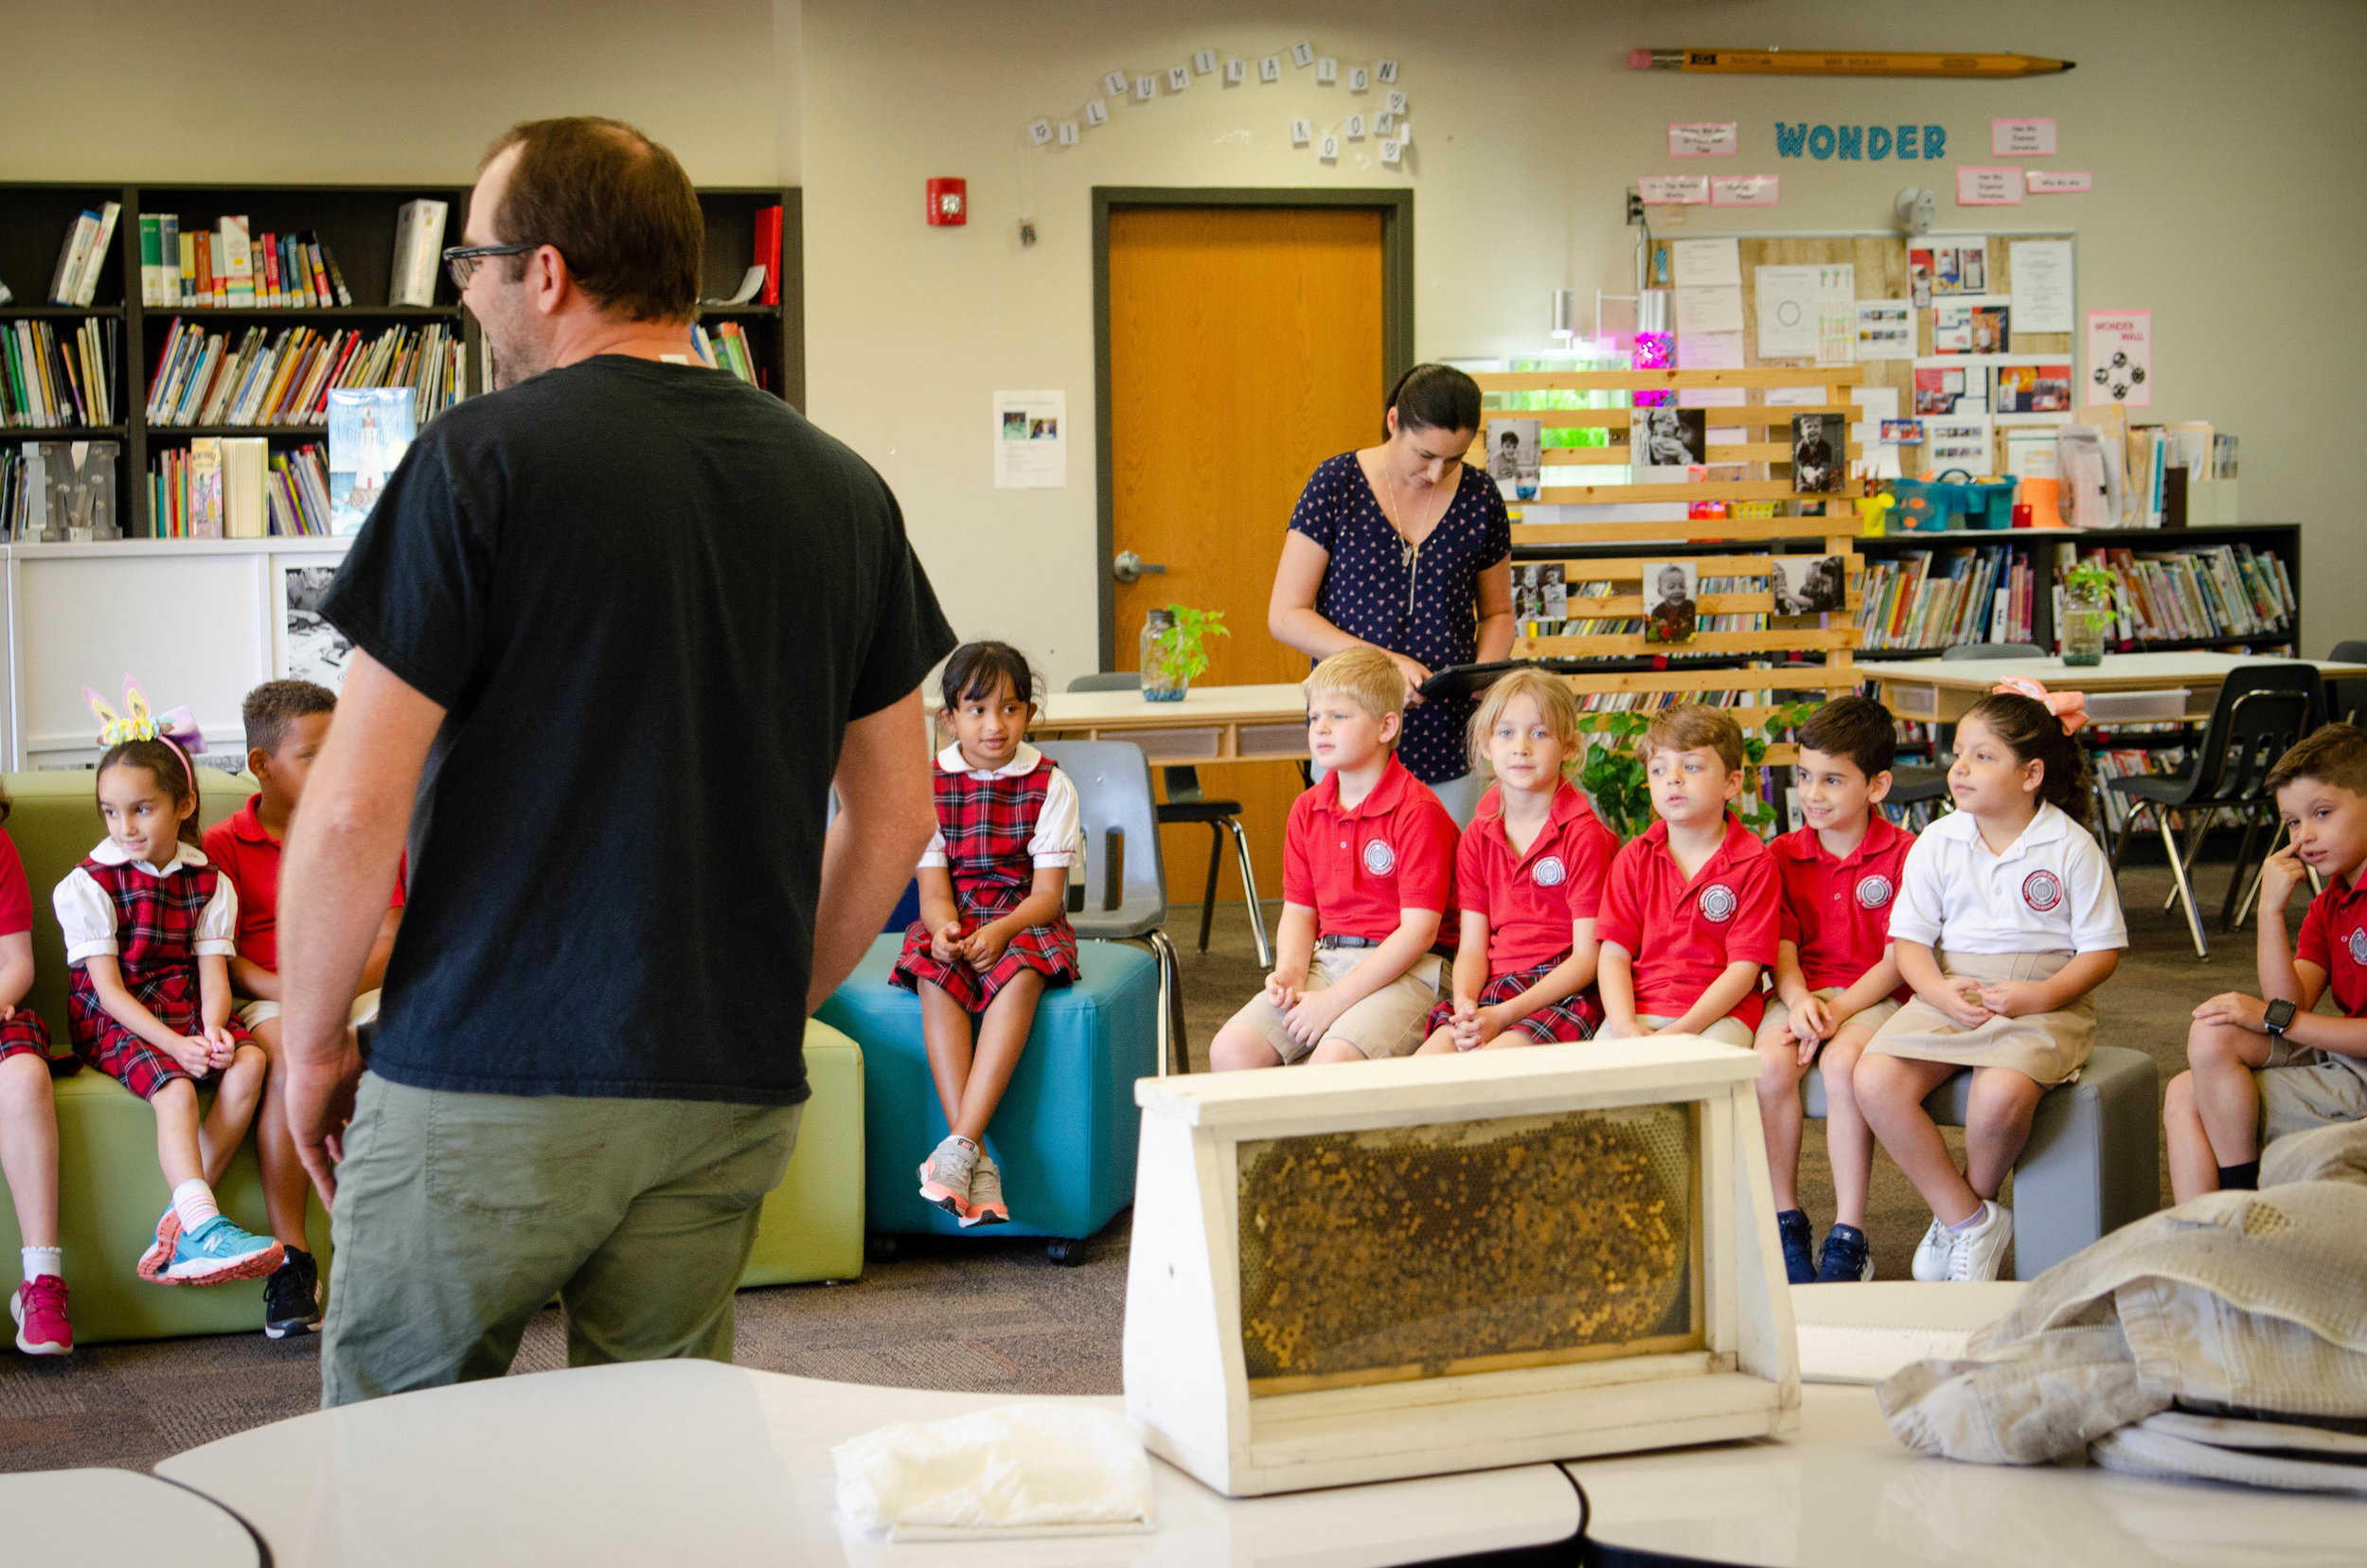 Honeybee Presentations - We love sharing our passion for how amazing honeybees are with others. We use our observation hive to teach students and adults all about how a colony of honeybees works and how important they are in our environment and for pollinating the food we eat. Interested in having us come to your school or event?